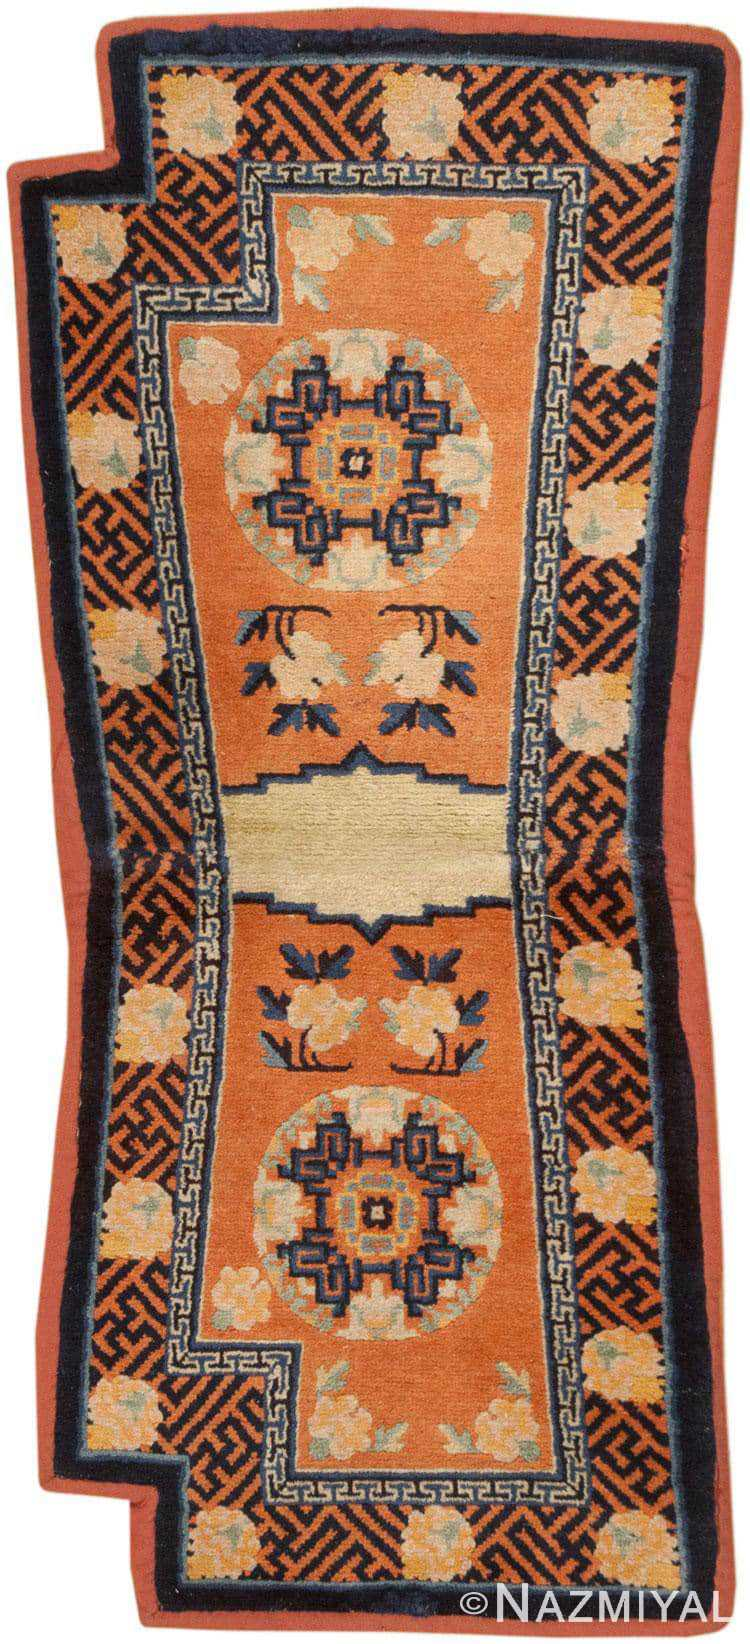 Collectible Antique Tibetan Saddle Horse Cover #46360 by Nazmiyal Antique Rugs